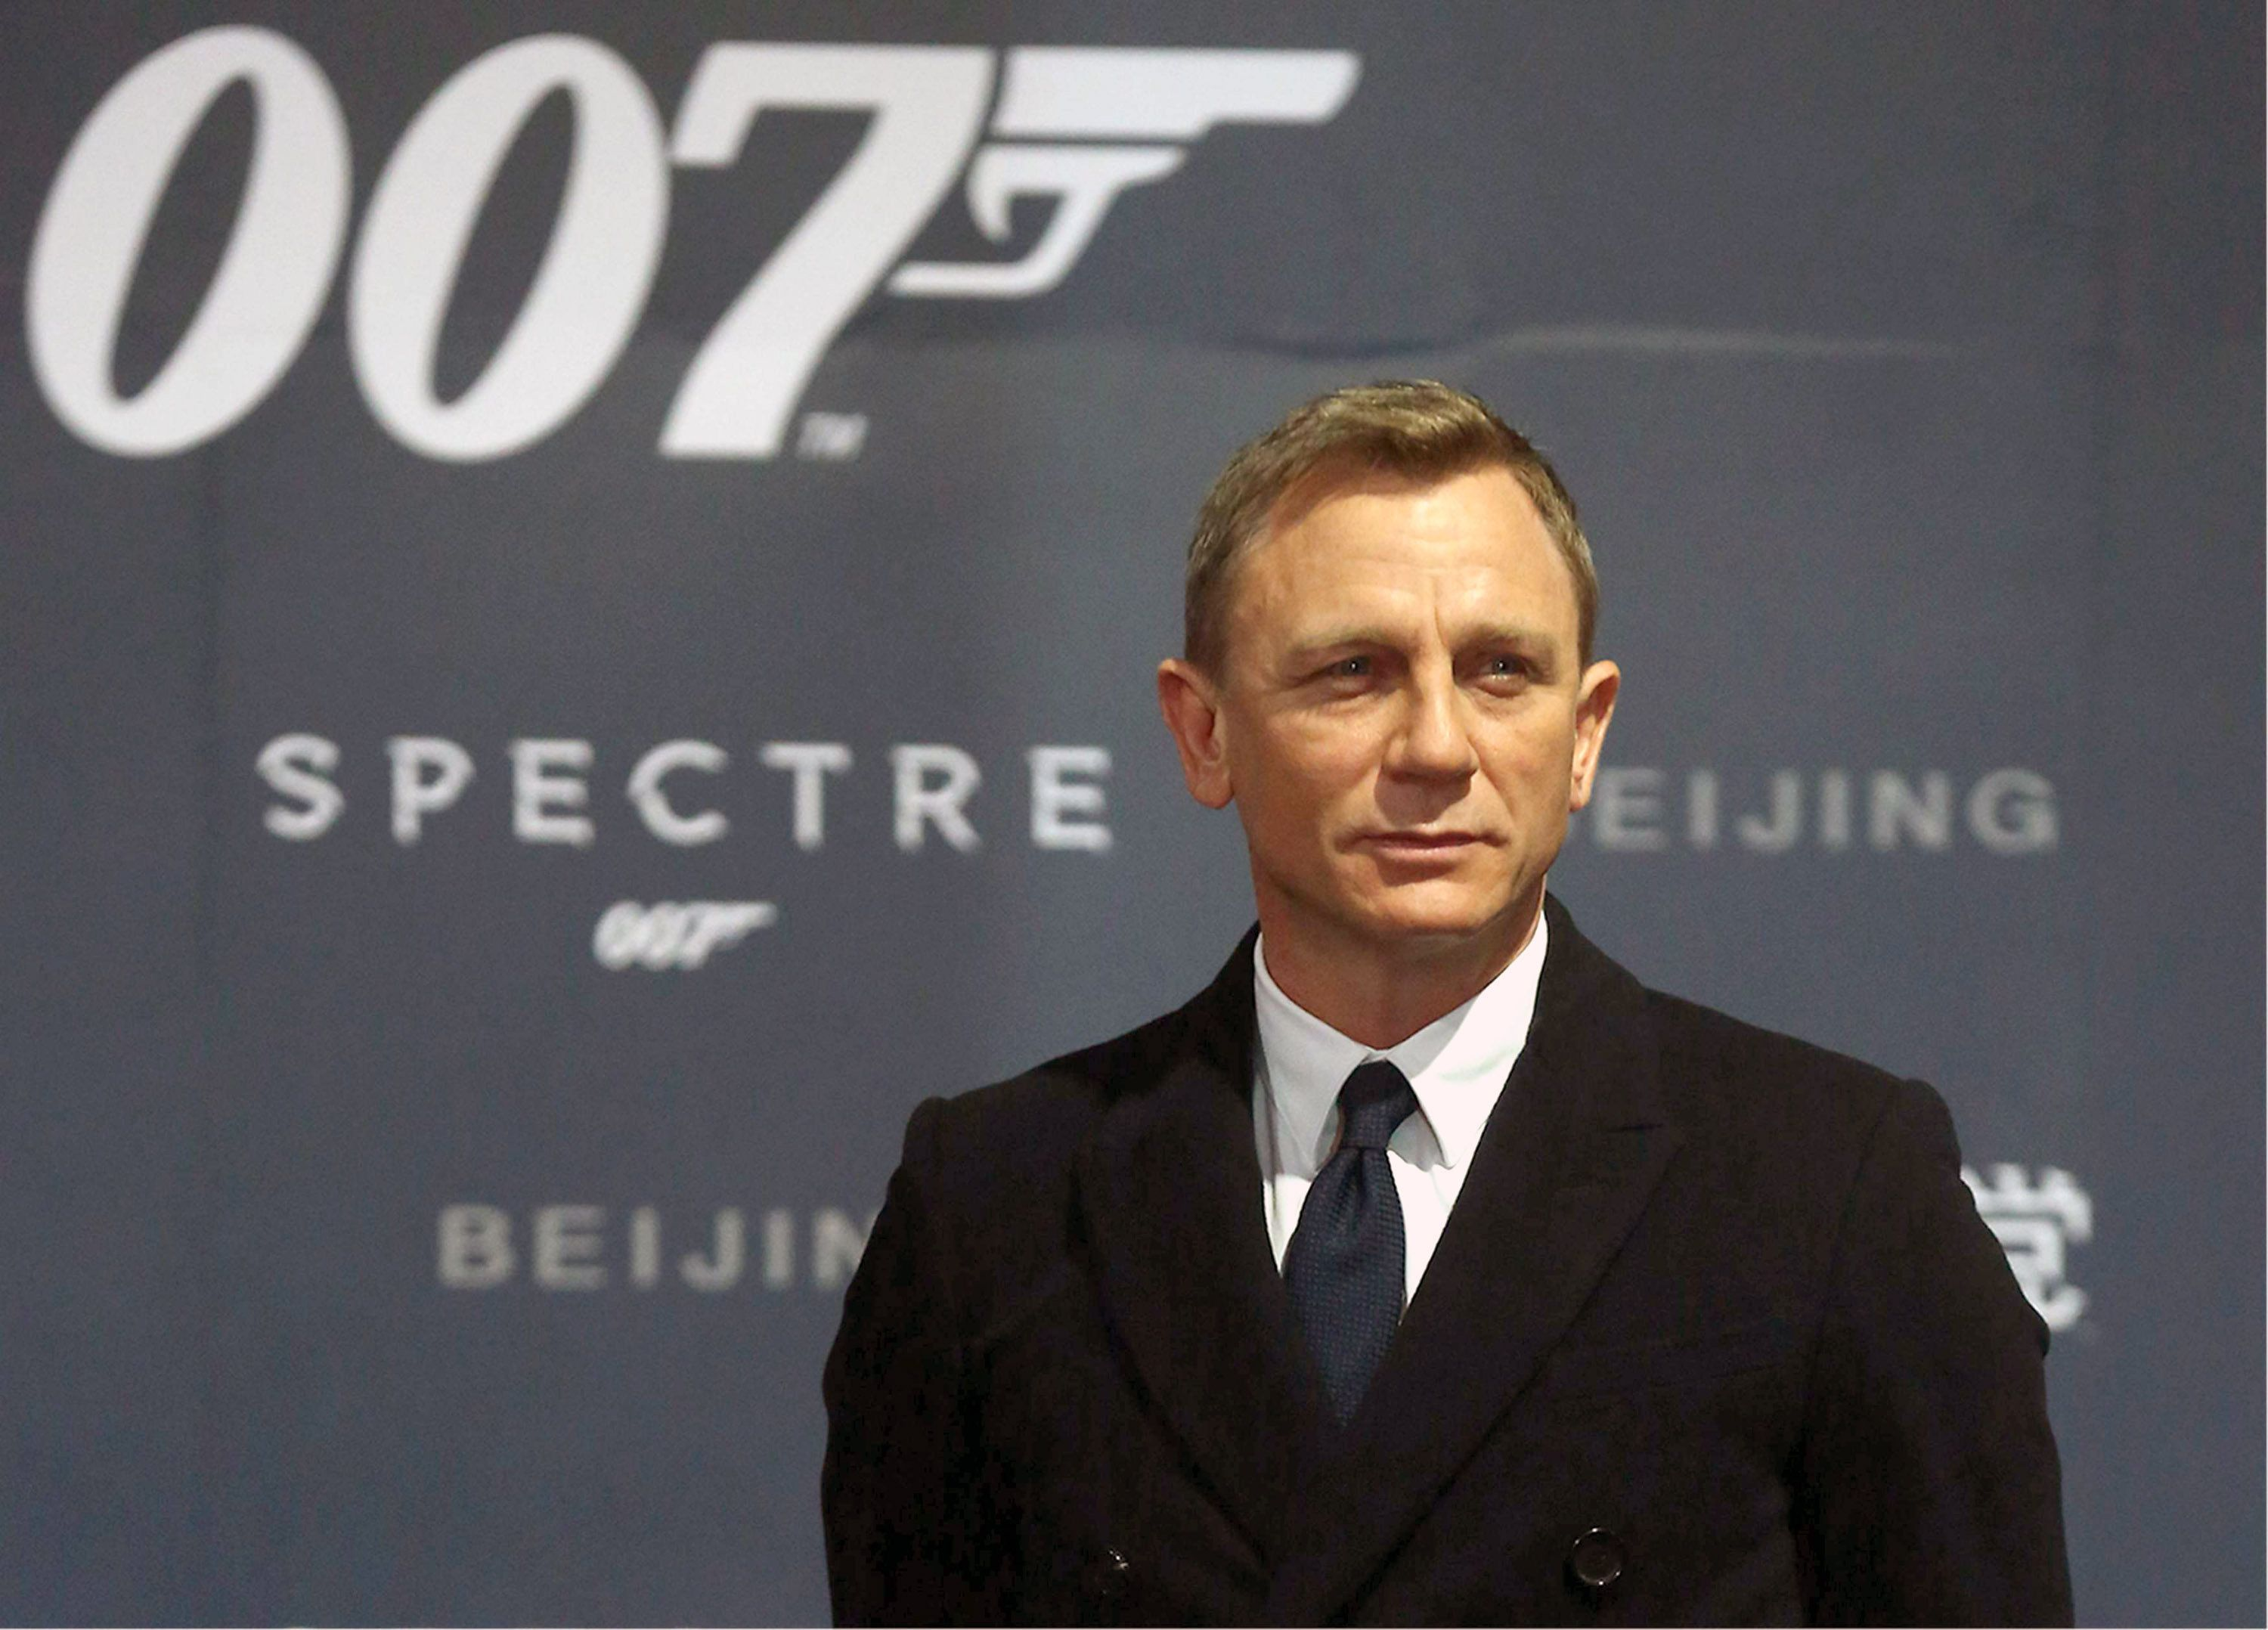 BEIJING, CHINA - NOVEMBER 12:  (CHINA OUT) Actor Daniel Craig attends 'Spectre' premiere at The Place on November 12, 2015 in Beijing, China.  (Photo by ChinaFotoPress/ChinaFotoPress via Getty Images)